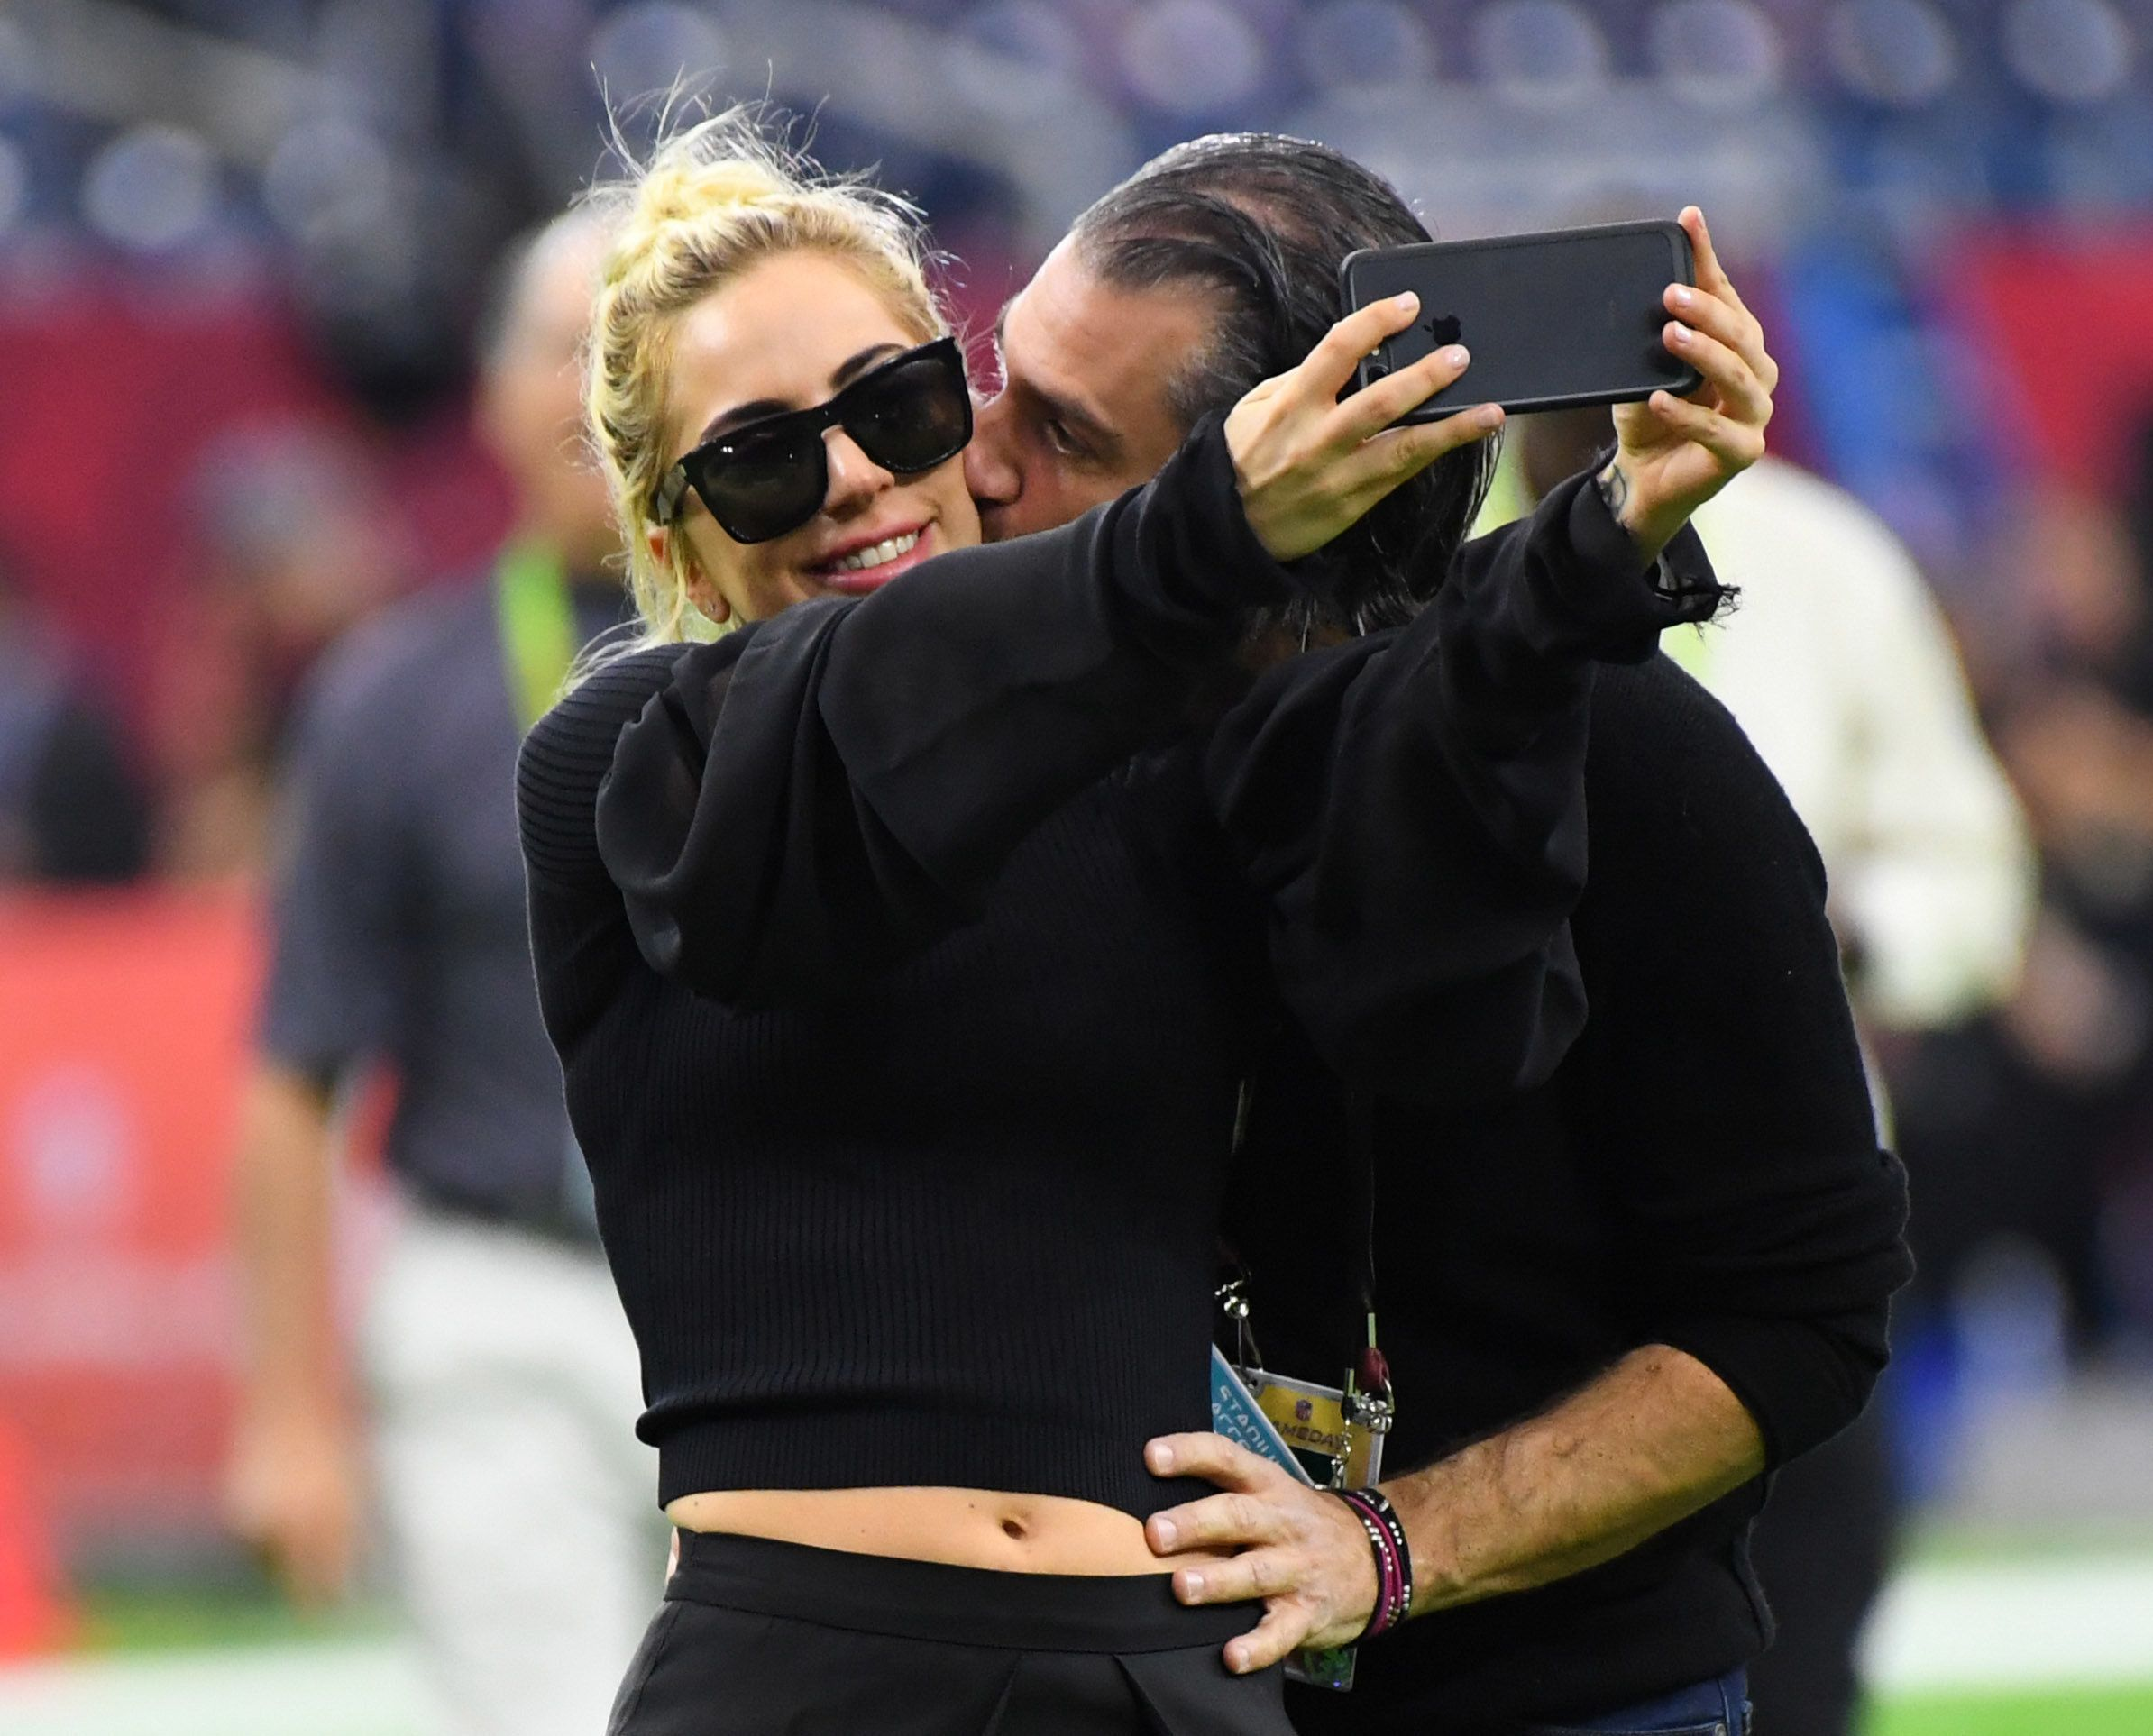 Lady Gaga gets a kiss from Christian Carino before Super Bowl LI.